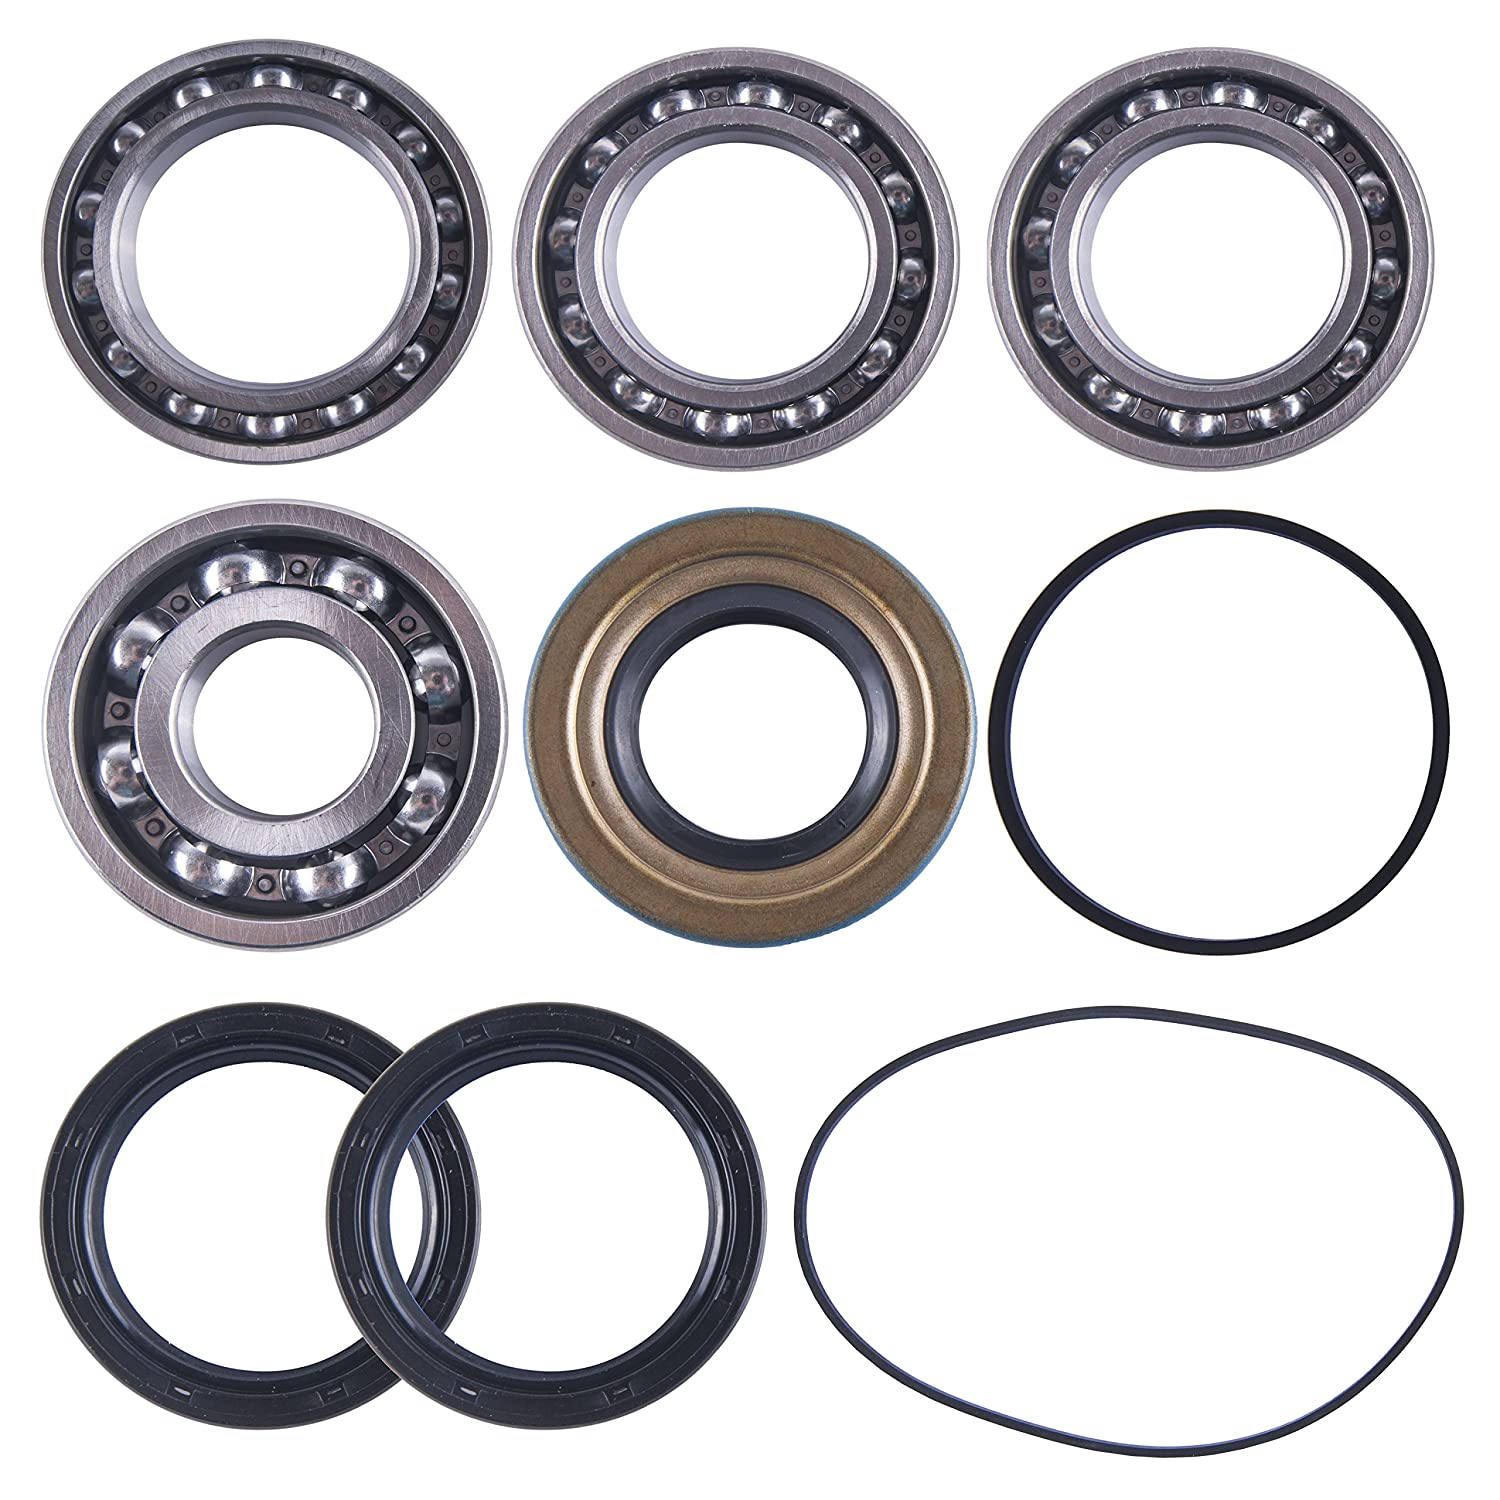 Polaris Magnum/ATP front differential bearing & seal kit 330/500 2002 2003 2004 2005 2006 East Lake Axle